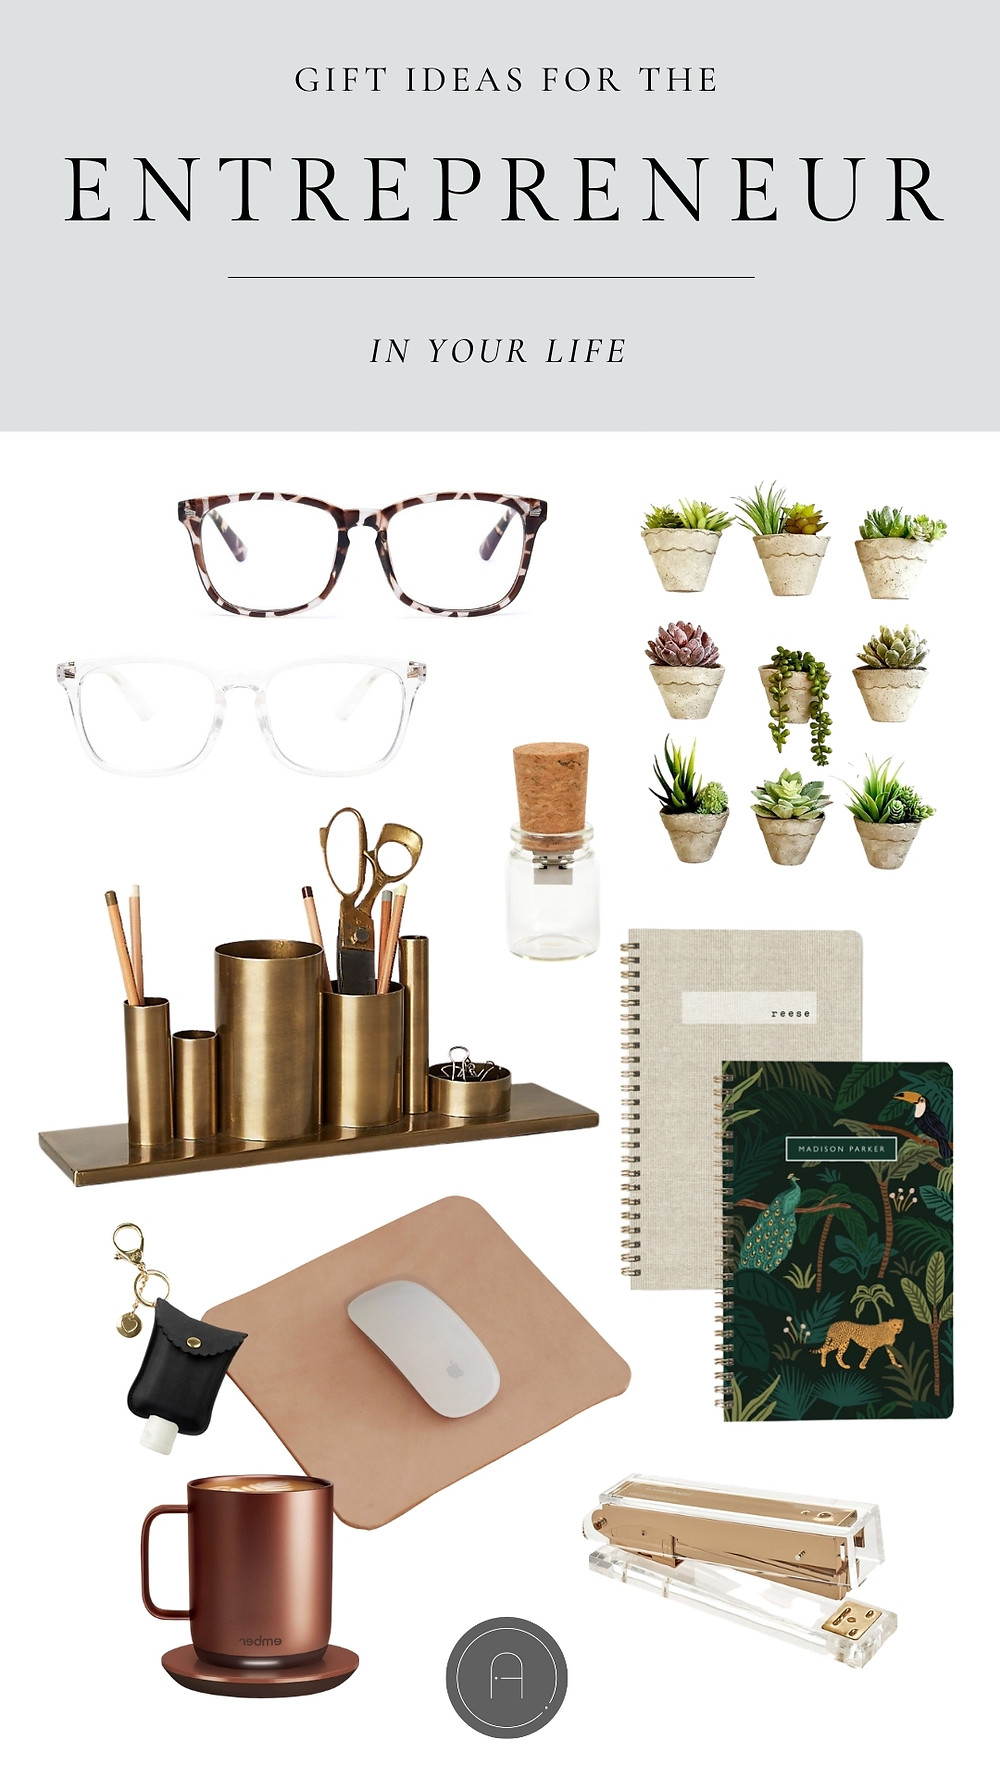 Clever catchy thoughtful gift ideas blue light glasses usb cork pencil holder leather mouse pad bluetooth mouse brass stapler heated mug hand sanitizer keychain notebook golden coil plant magnets fridge magnets cute holiday shopping get the look